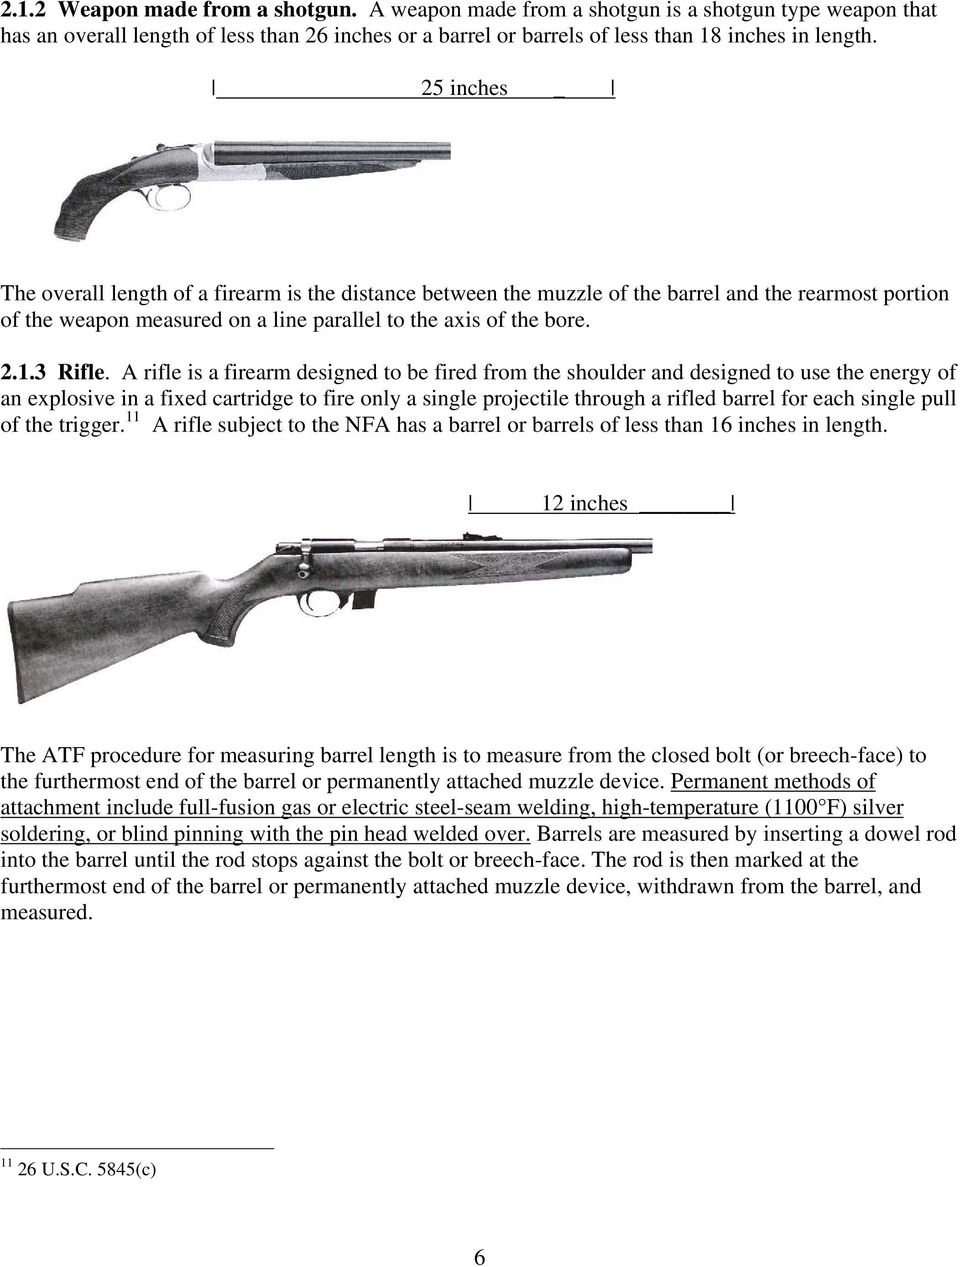 CHAPTER 2  WHAT ARE FIREARMS UNDER THE NFA? - PDF